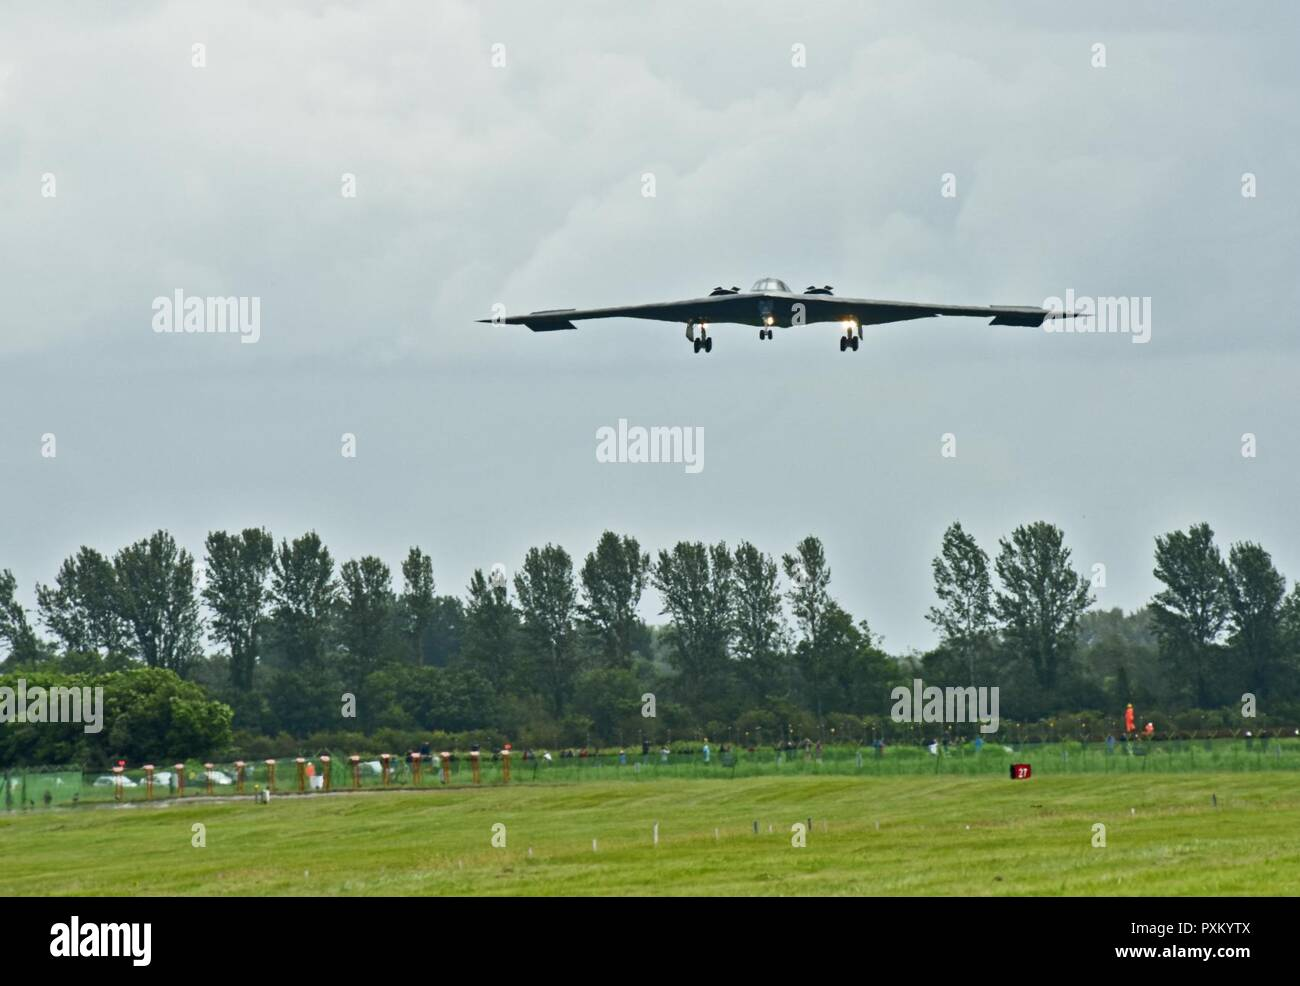 A B-2 Spirit deployed from Whiteman Air Force Base, Mo., approaches the runway at RAF Fairford, U.K., June 9, 2017. The B-2 routinely conducts bomber assurance and deterrence missions providing a flexible and vigilant long-range global strike capability, and is just one demonstration of the U.S. commitment to supporting global security. Stock Photo